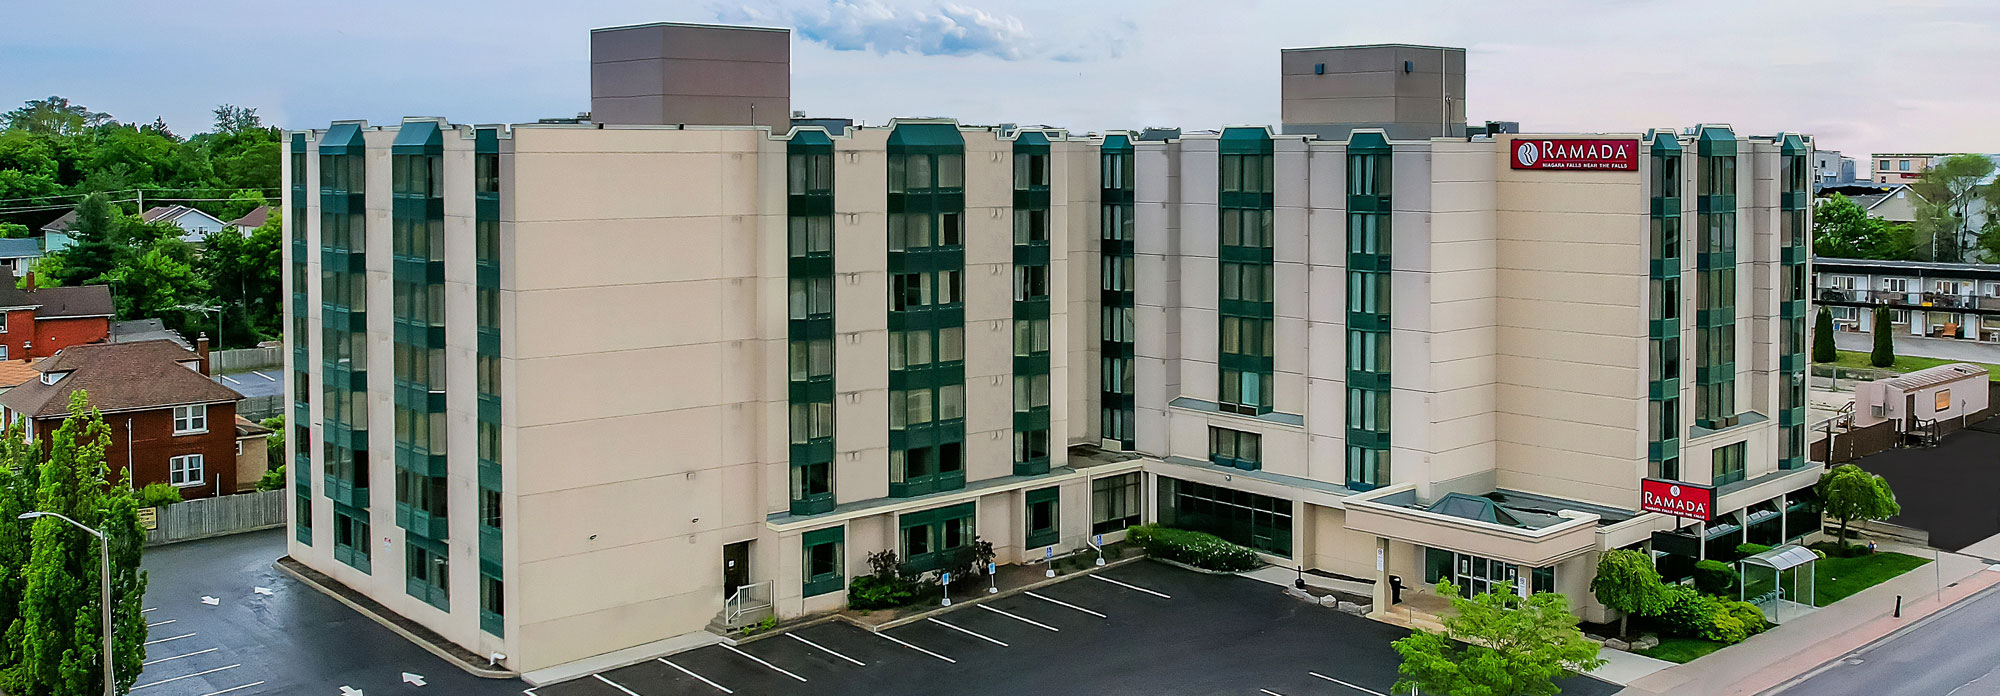 Exterior - Ramada by Wyndham Niagara Falls Near the Falls